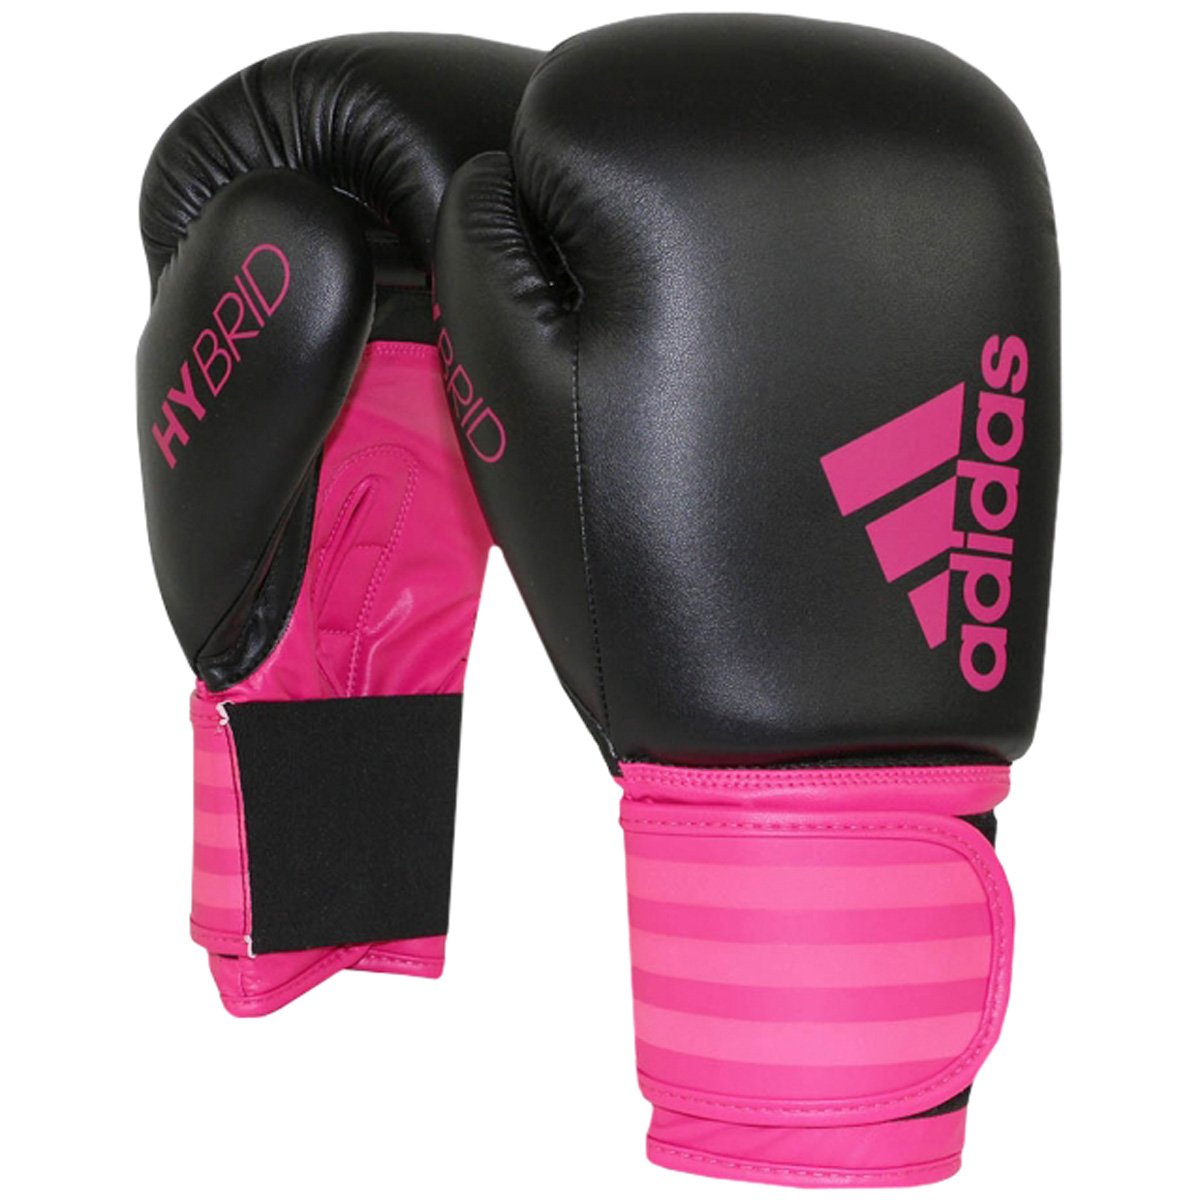 Boxing clothing for women